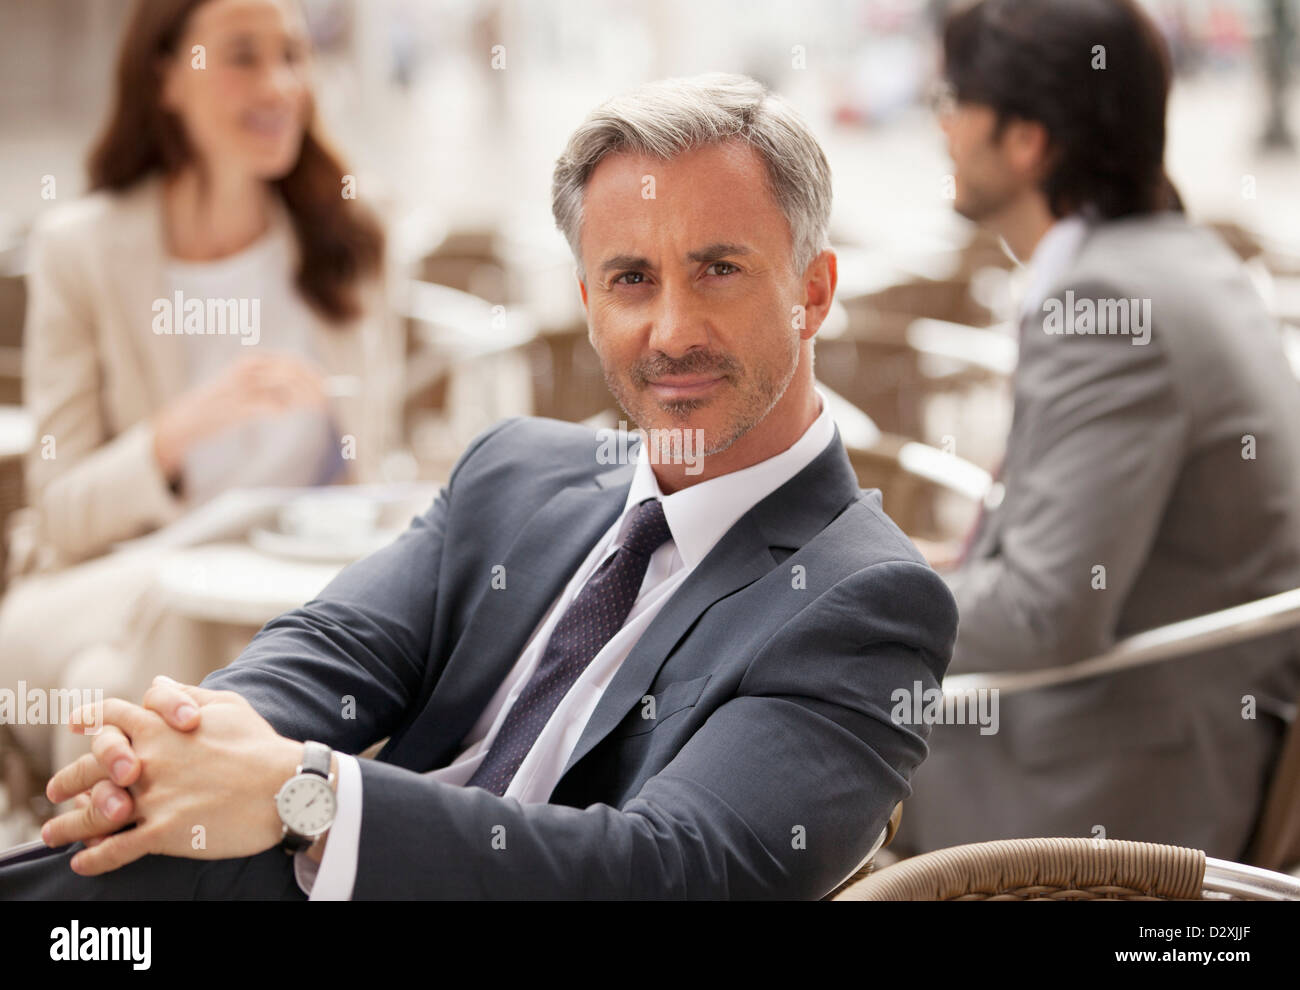 Portrait of smiling businessman at sidewalk cafe with co-workers in background - Stock Image